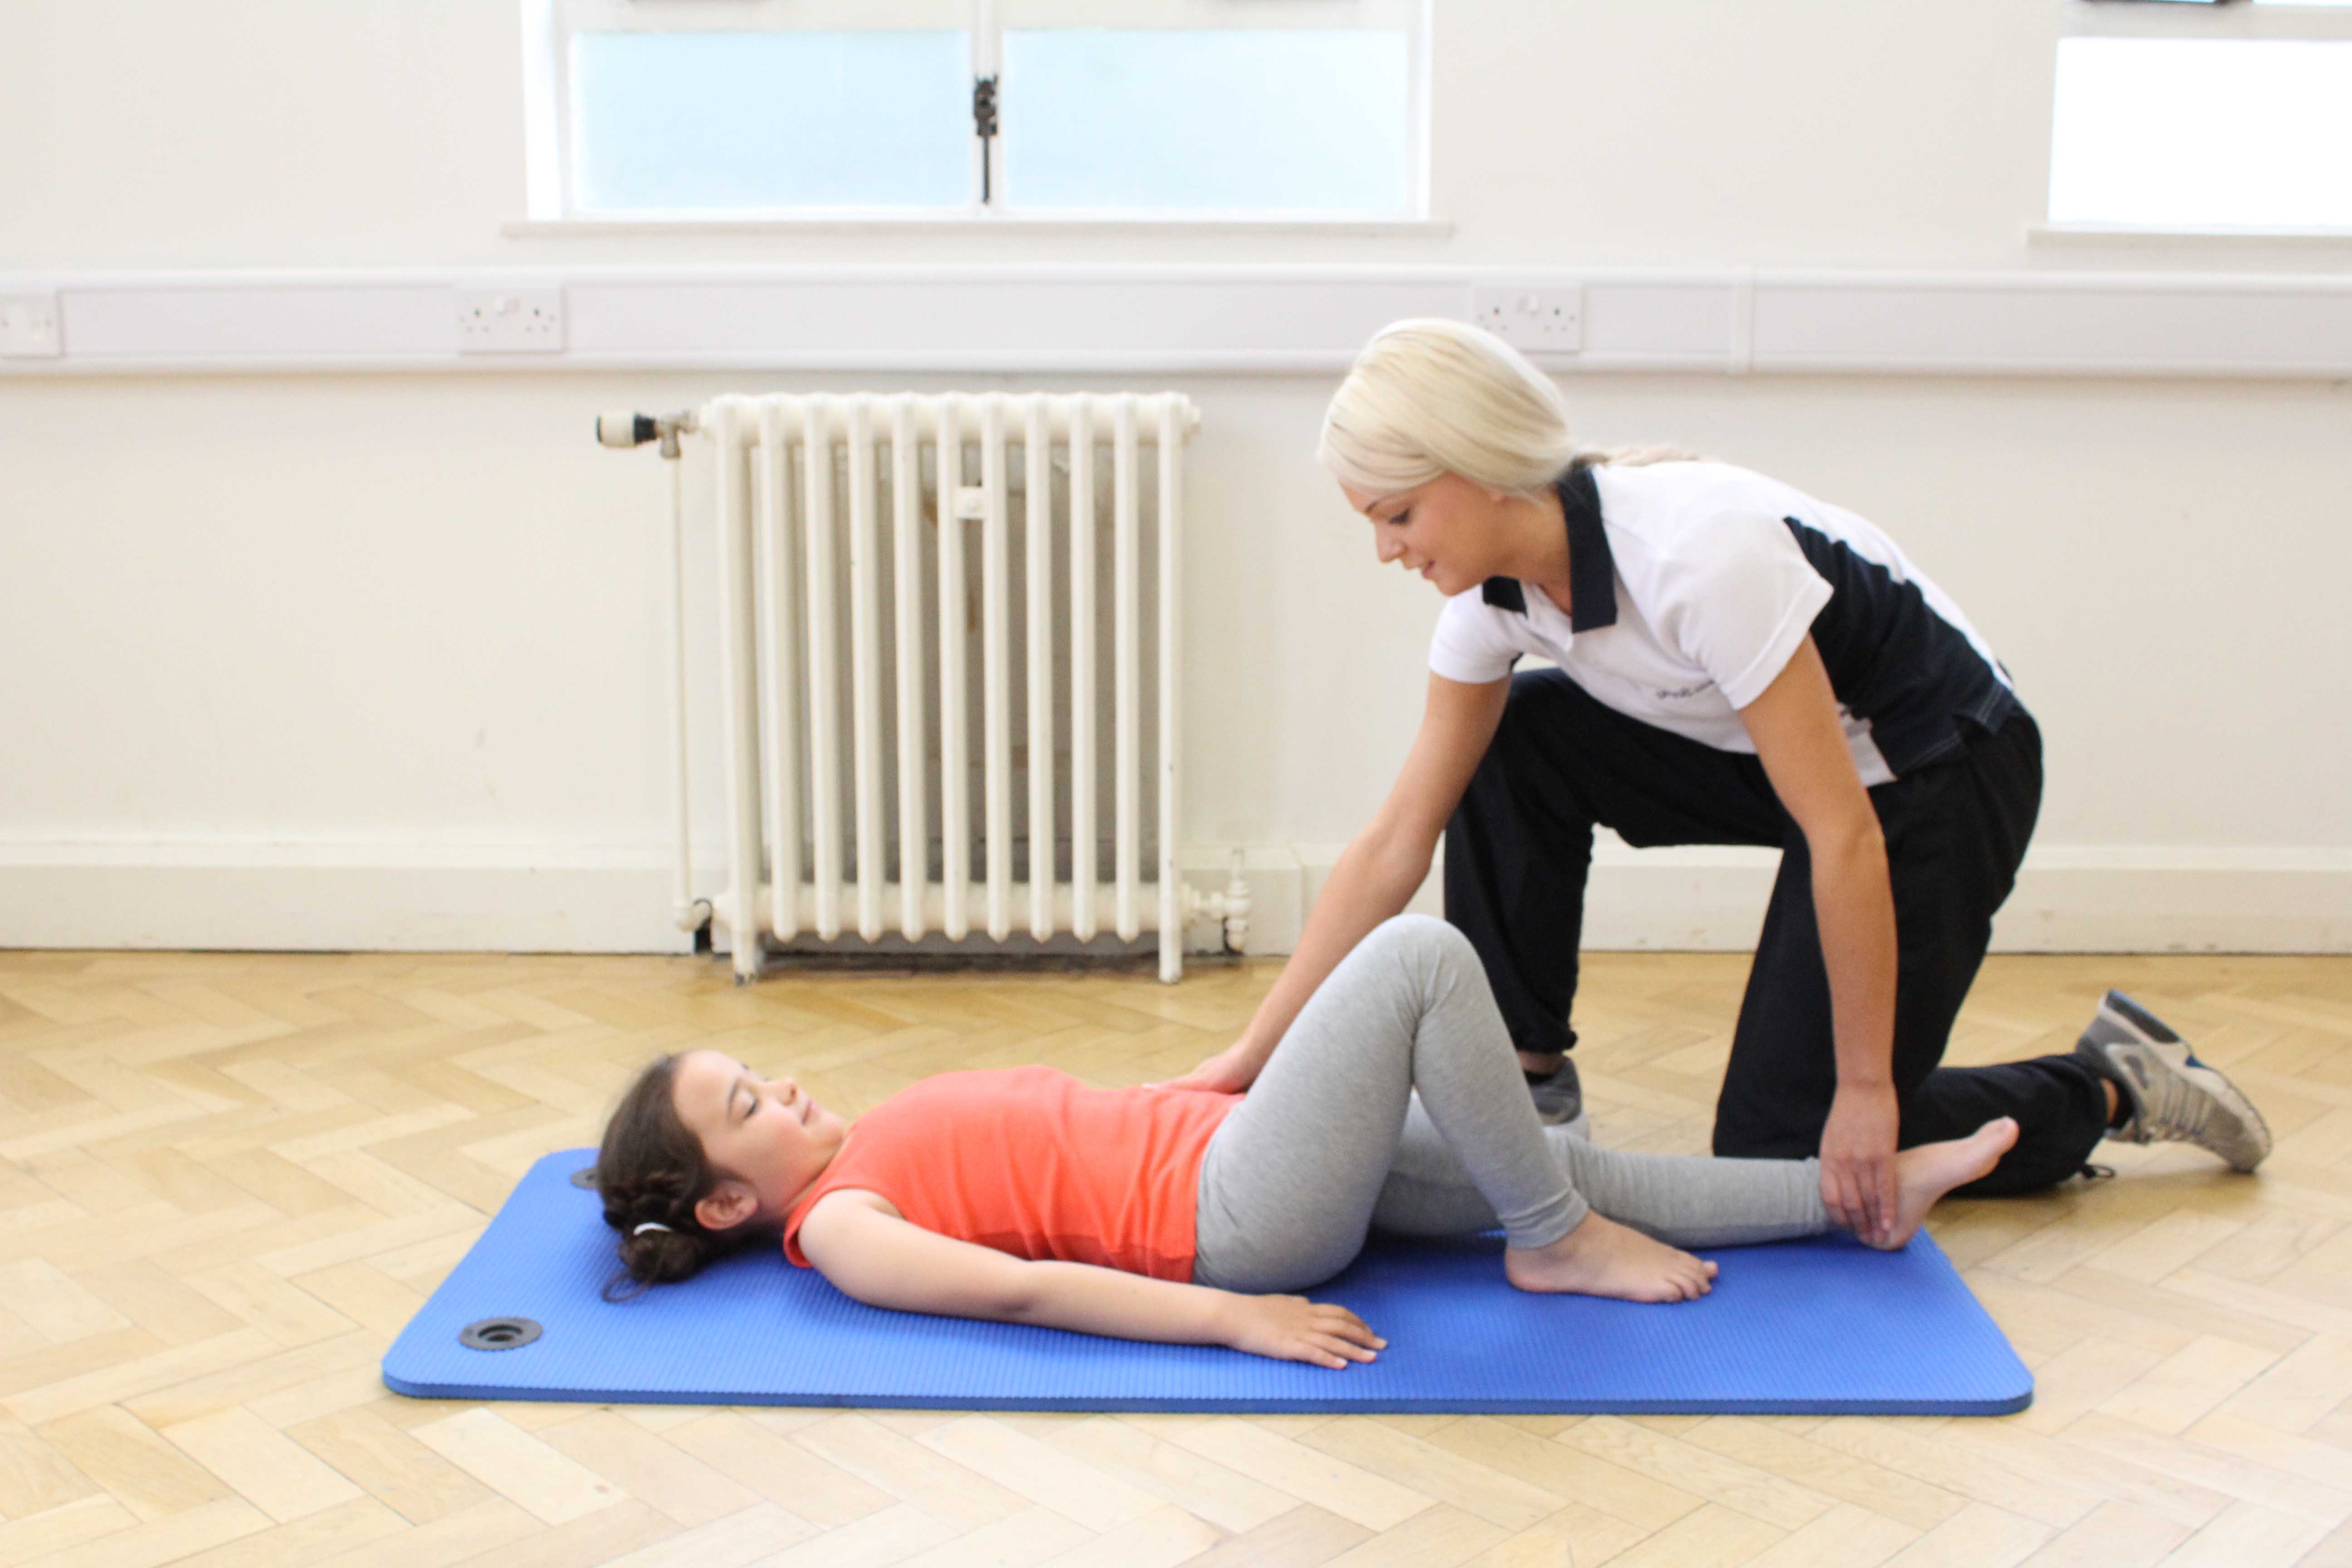 Passive stretches and mobilisations to relieve pain and stiffness